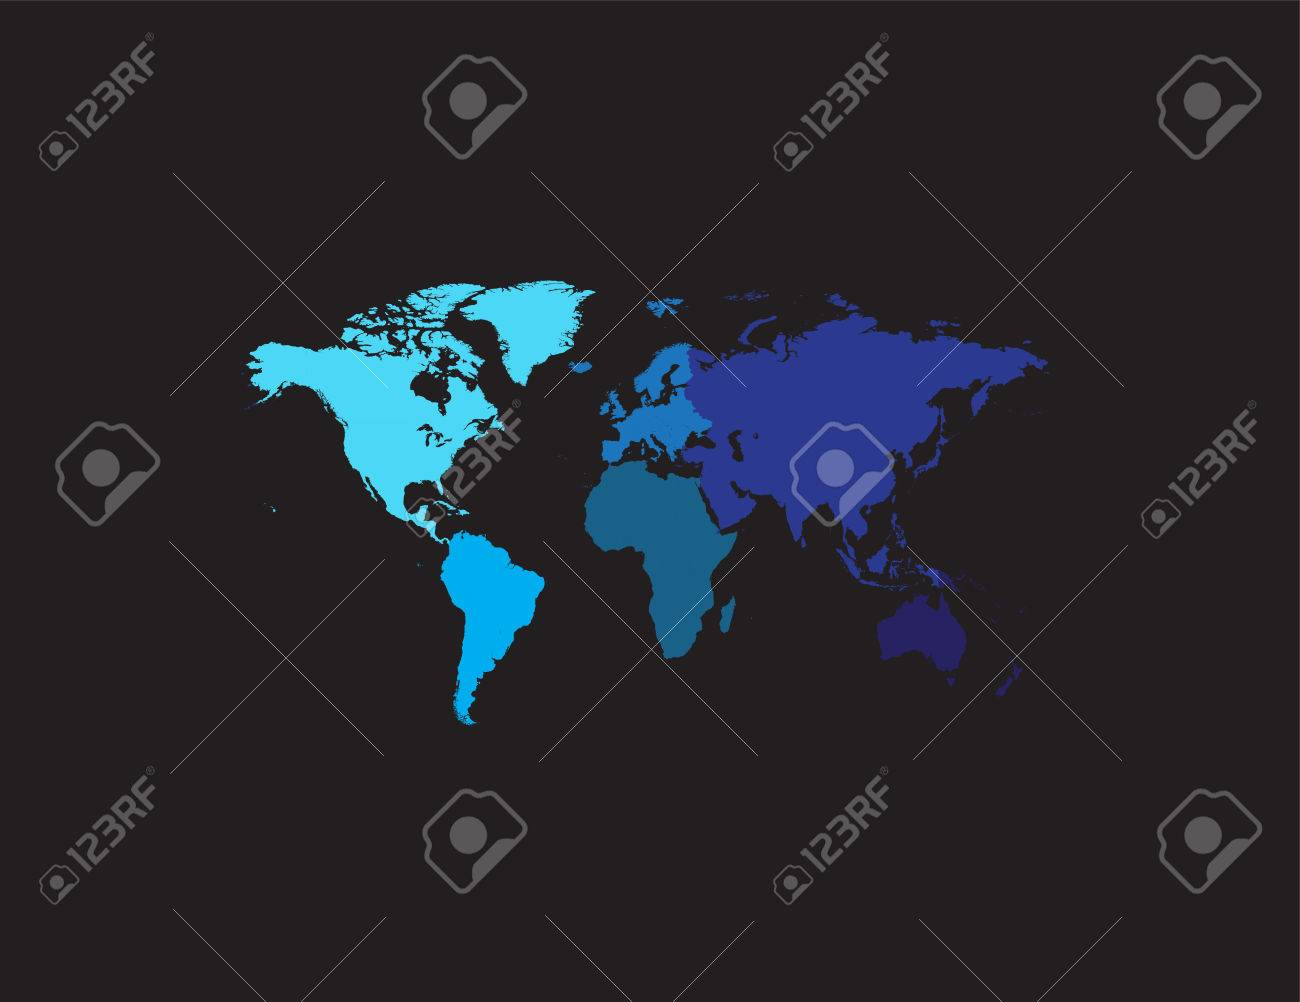 World map continents blue flat design royalty free cliparts vectors vector world map continents blue flat design gumiabroncs Choice Image